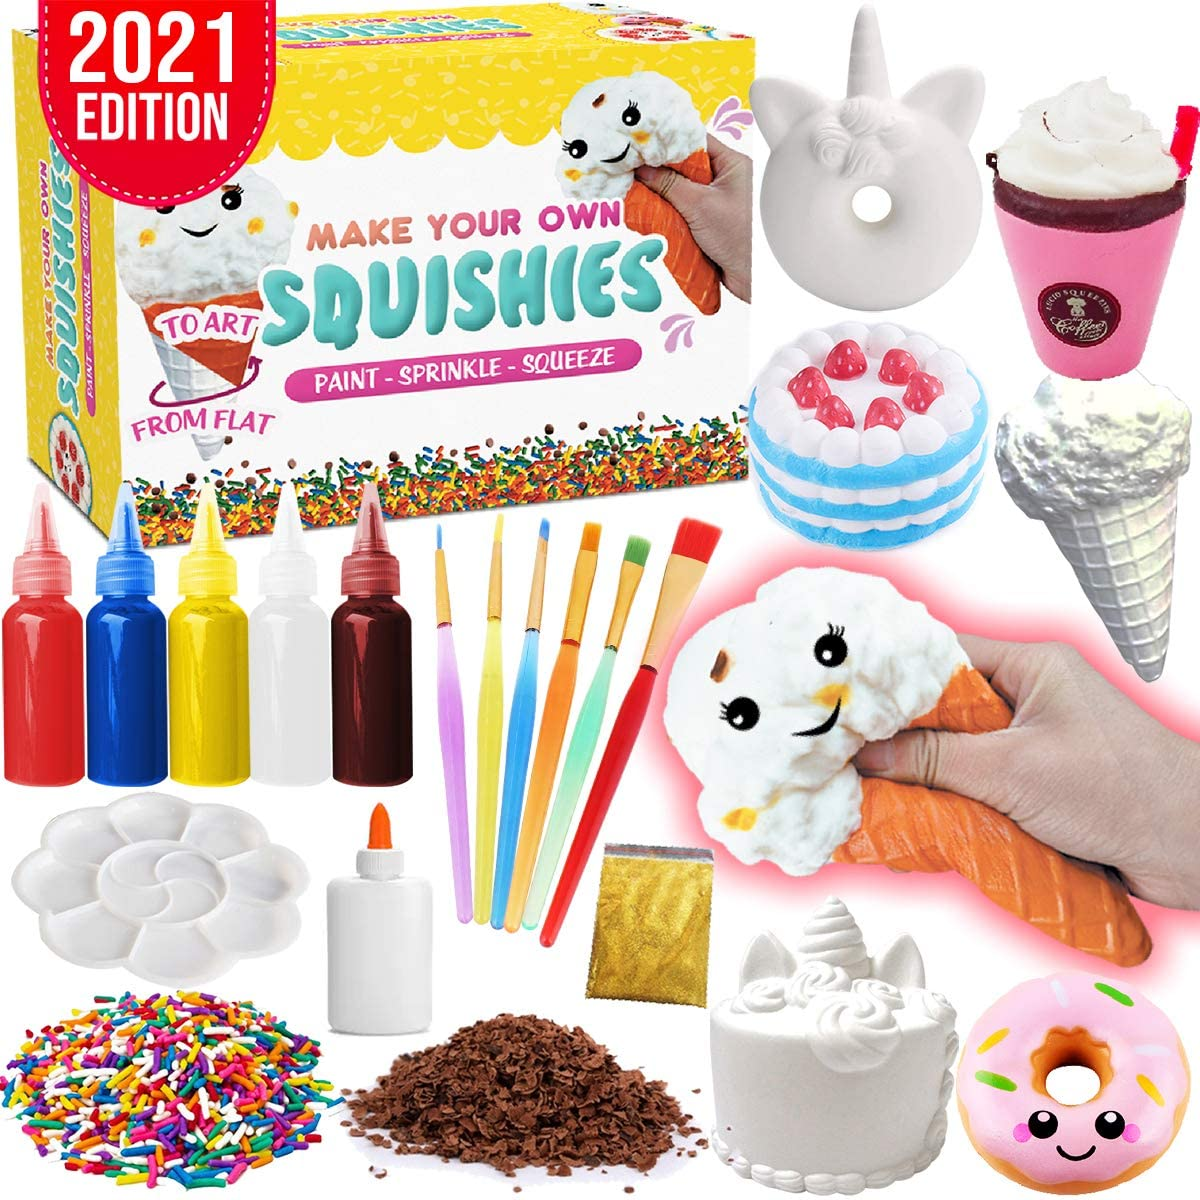 Insnug Sensory Toys Squishy Toy Food - Stress Relief Squishies for Girl Kids Age 4 6 8 10 Kawaii Jumbo DIY Slow Rising Squeeze Autism Toys Unicorn Gift Ice cream Cake Milk Shake Donut Painting Art Set